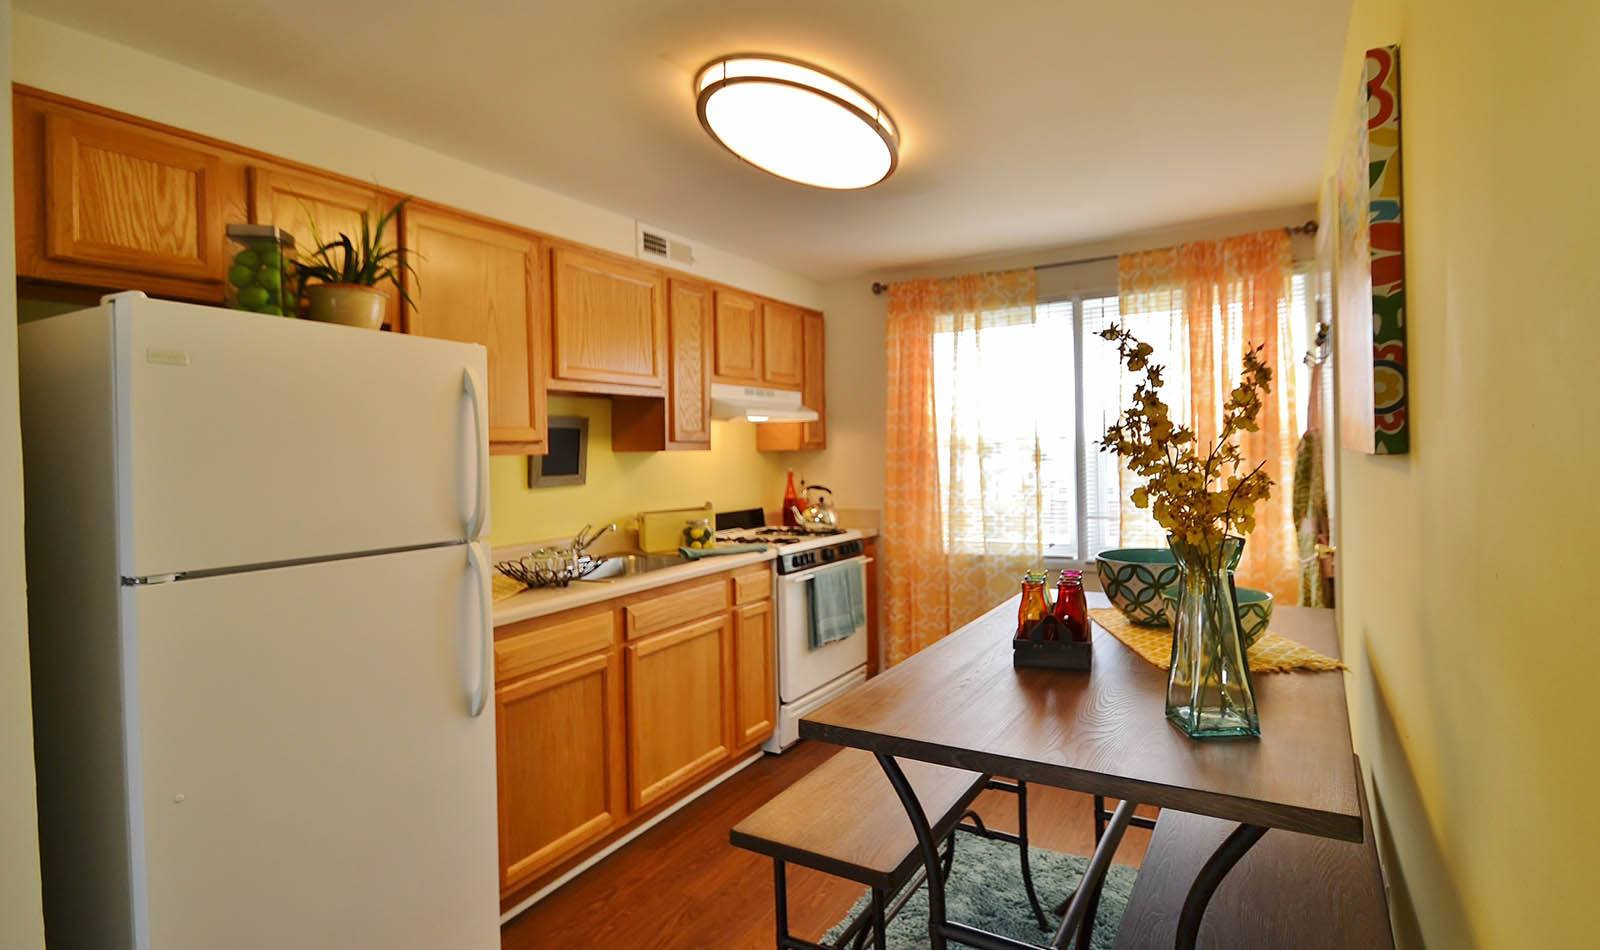 Kitchen at apartments in MD